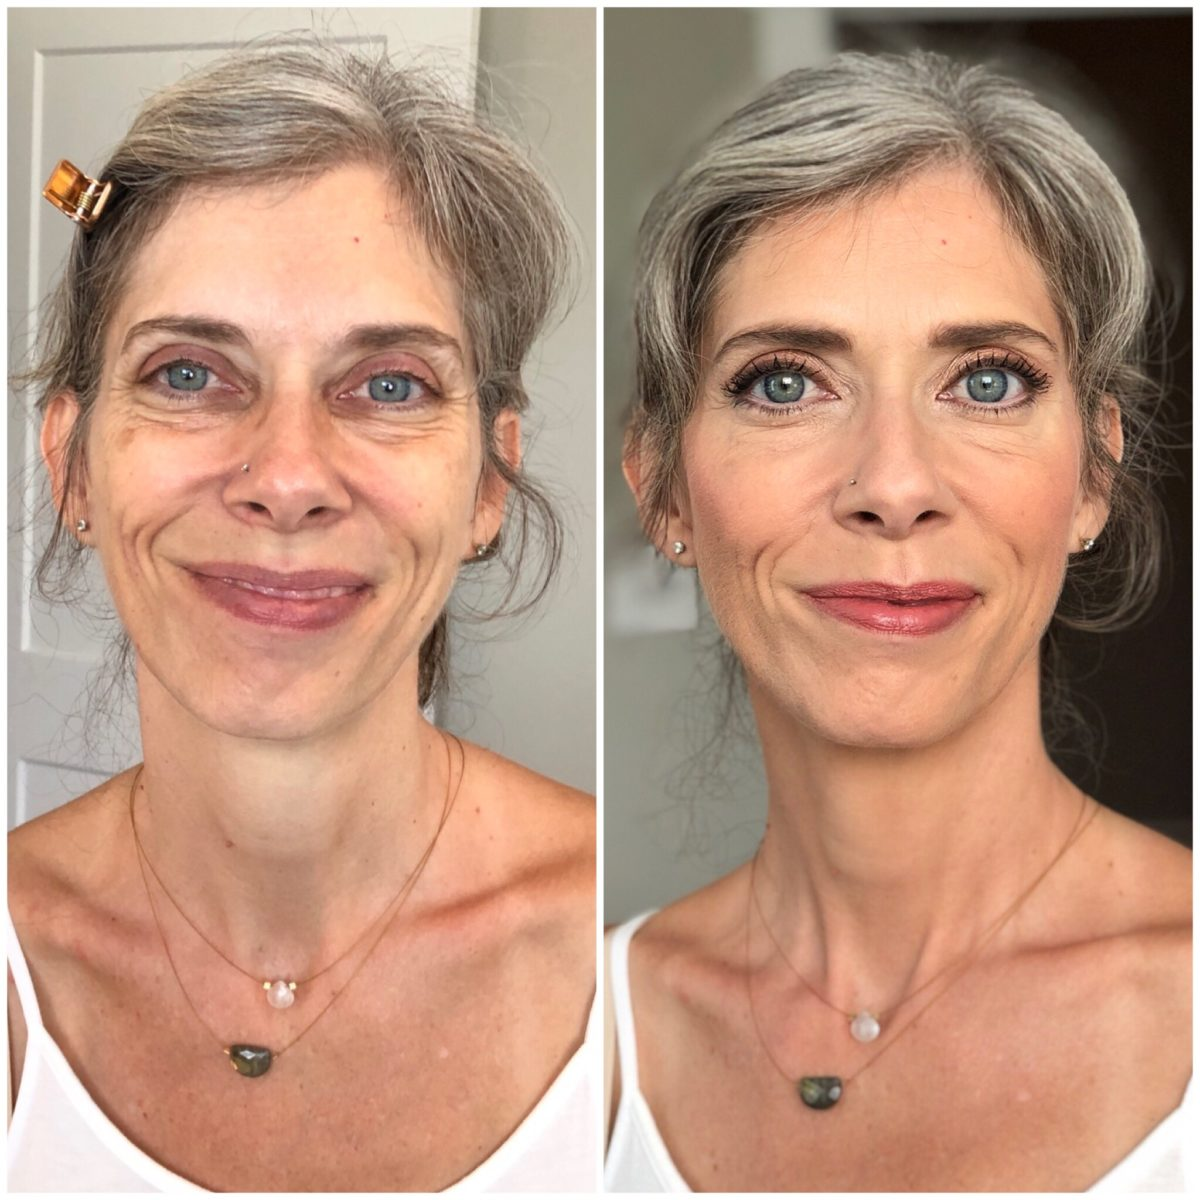 Fix These 12 Makeup Mistakes That Could Be Aging You - JennySue Makeup